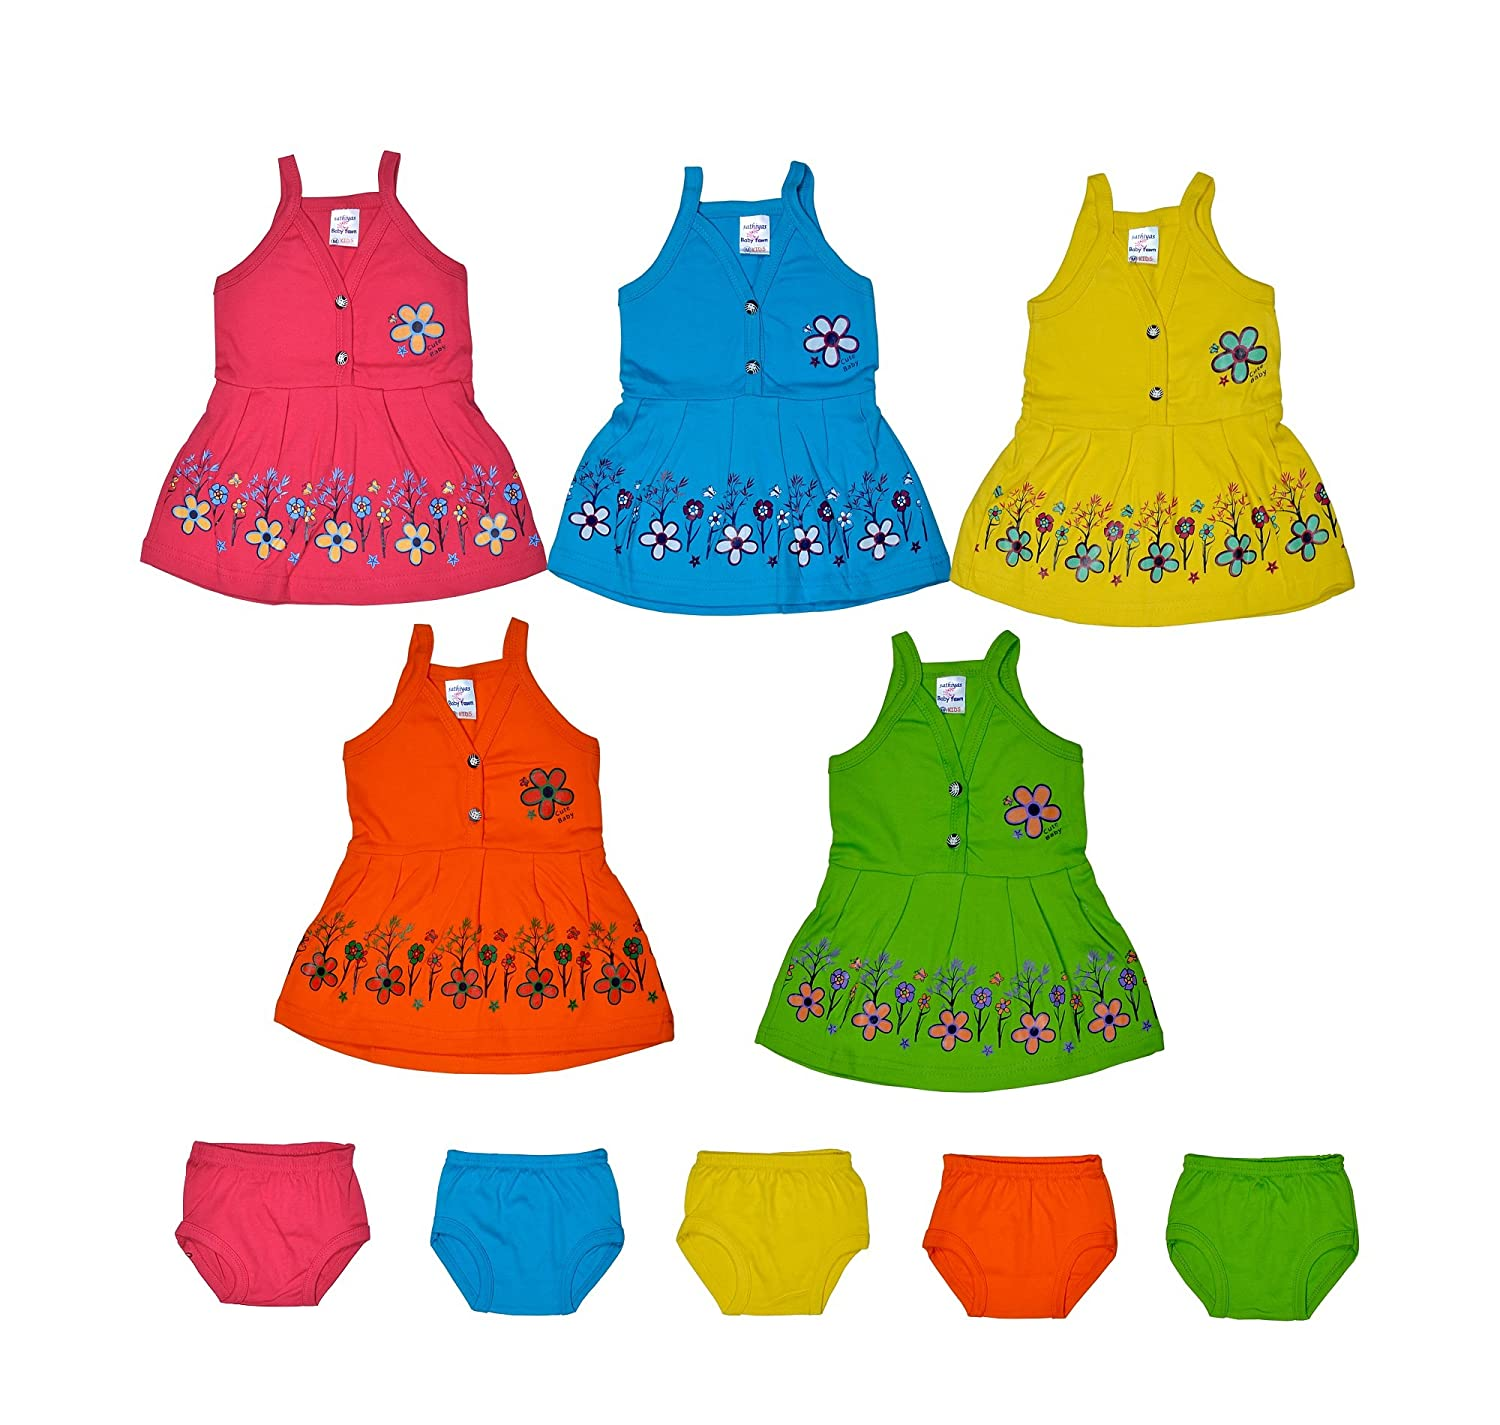 da5a848610c34 Sathiyas Baby Girls A-Line Cotton Dresses (Multicolor) (Pack of 5 Sets) (0-6  months,…